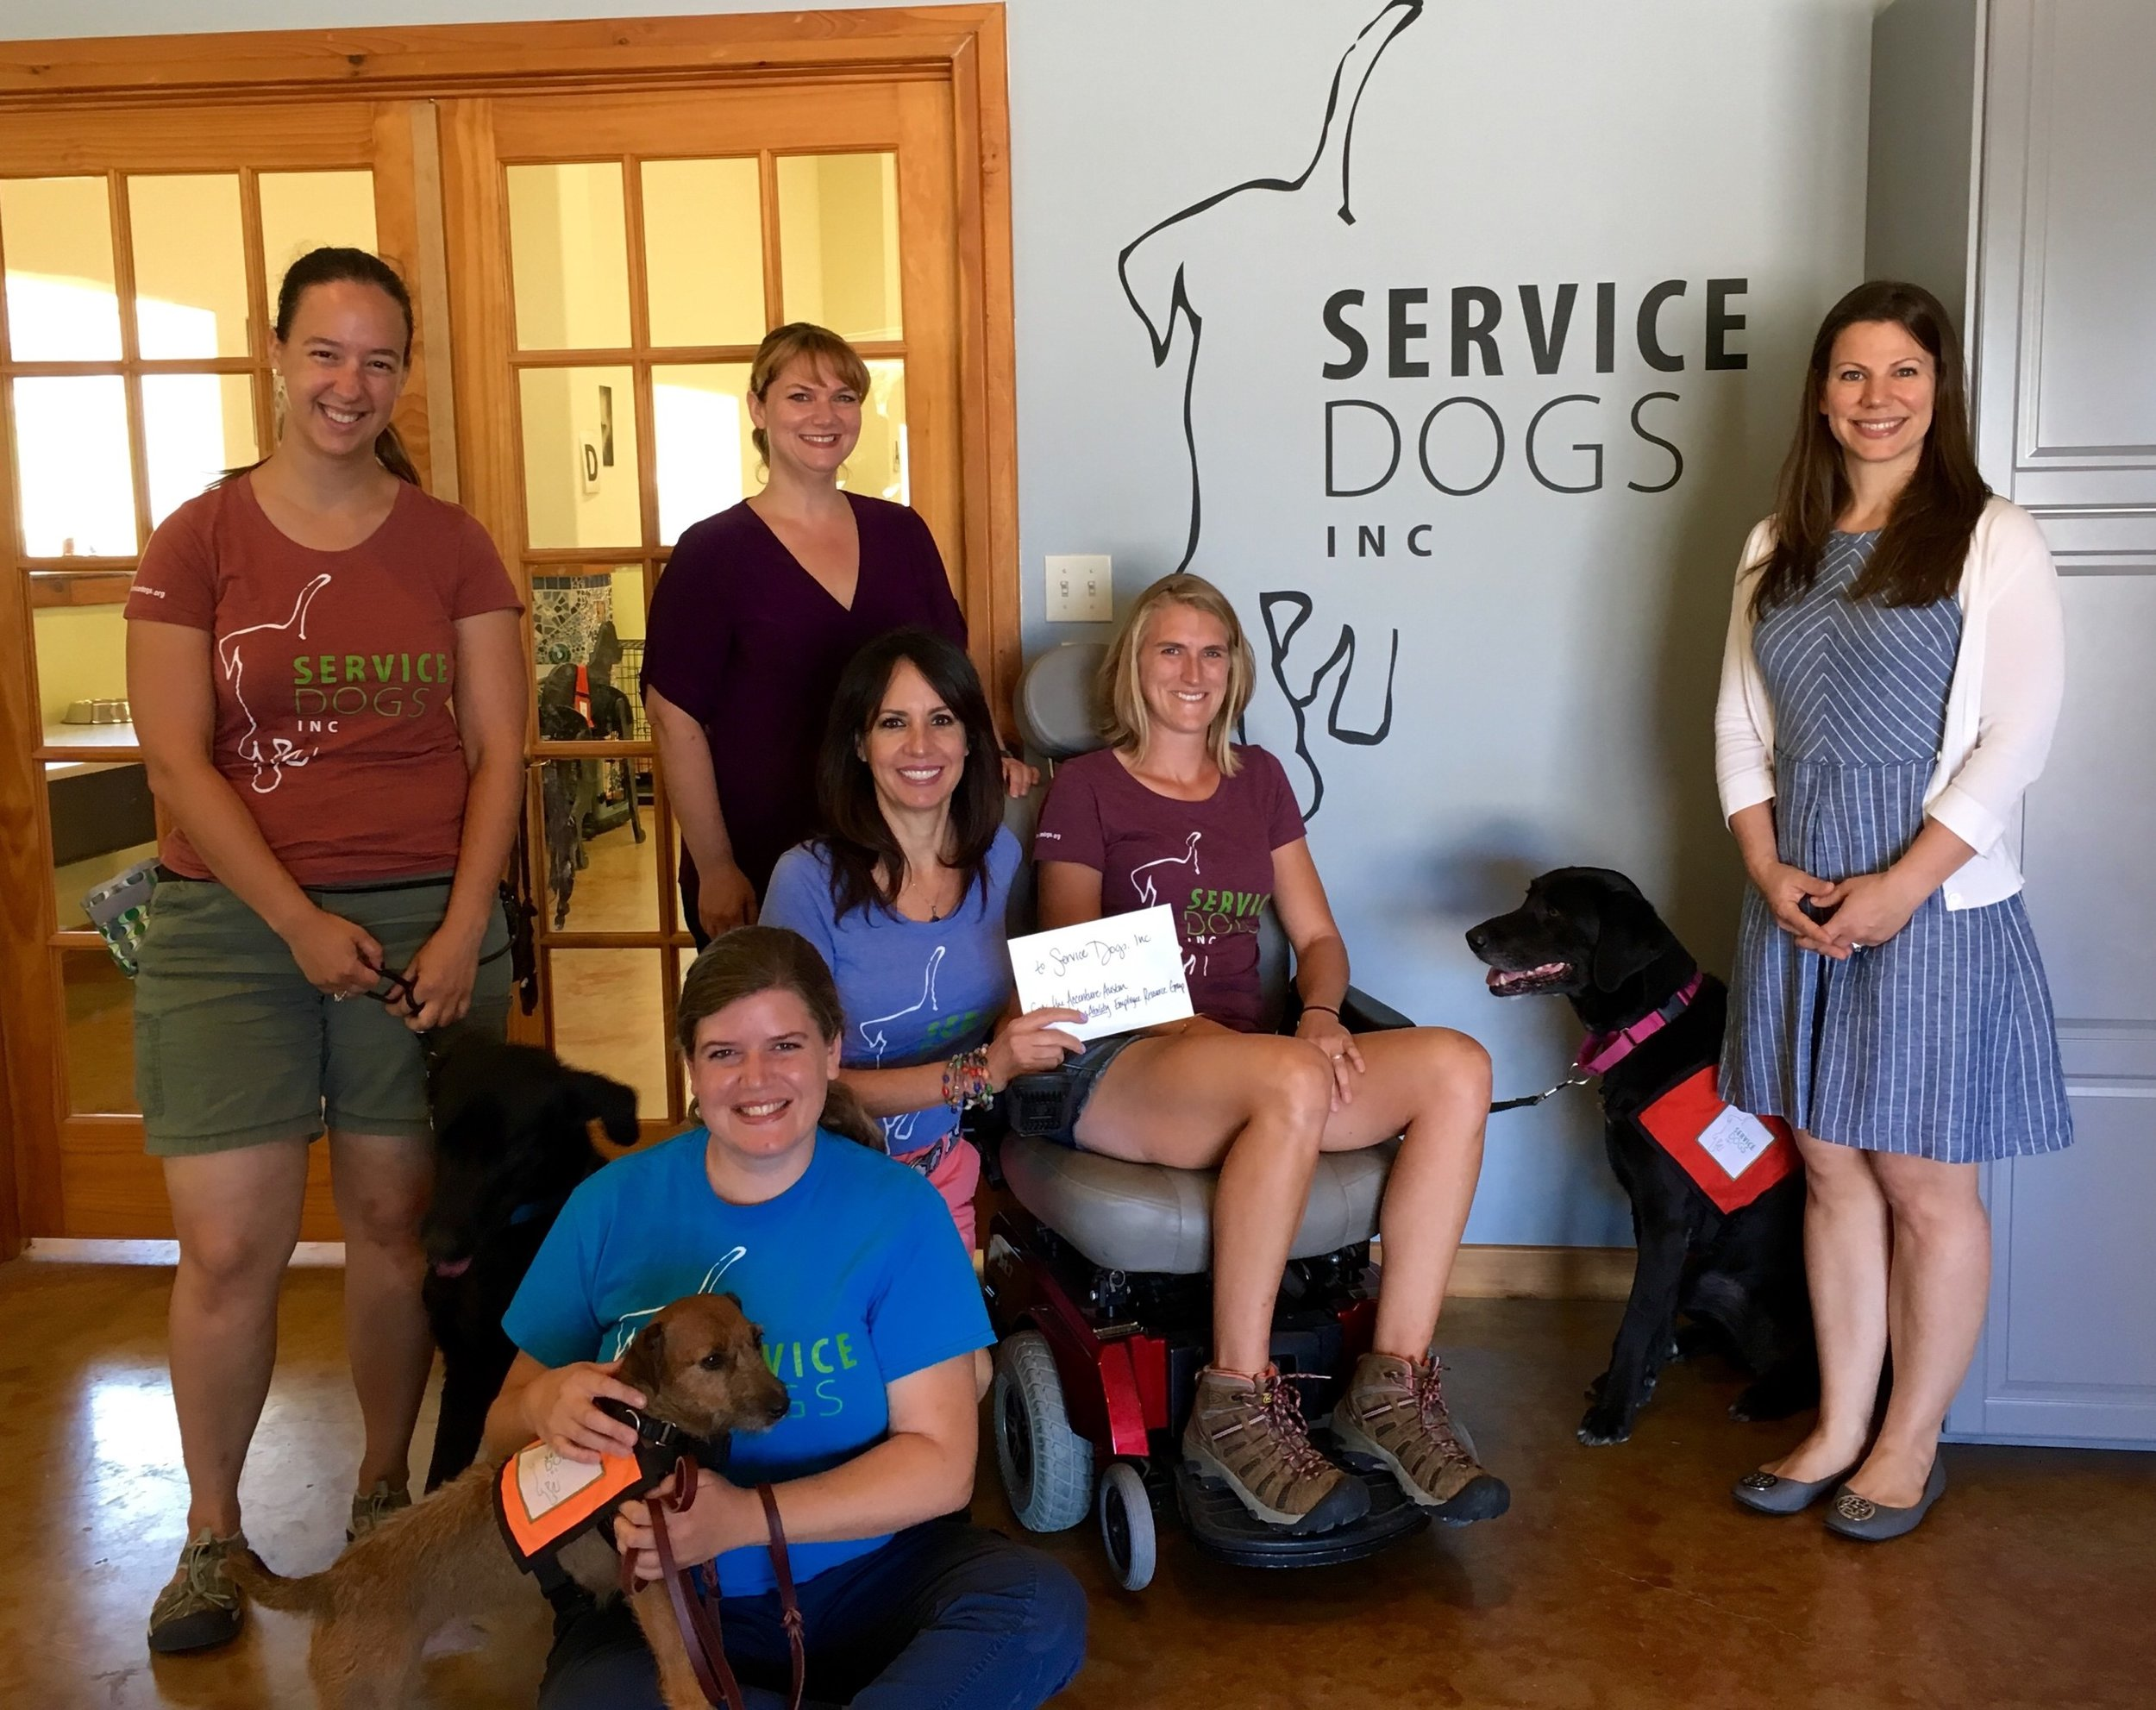 The Austin Office brought Service Dogs, Inc. into the Accenture office to provide our employees hands on insights into Service Dogs, Inc. as well as provide education and awareness about the vital service these dogs provide.